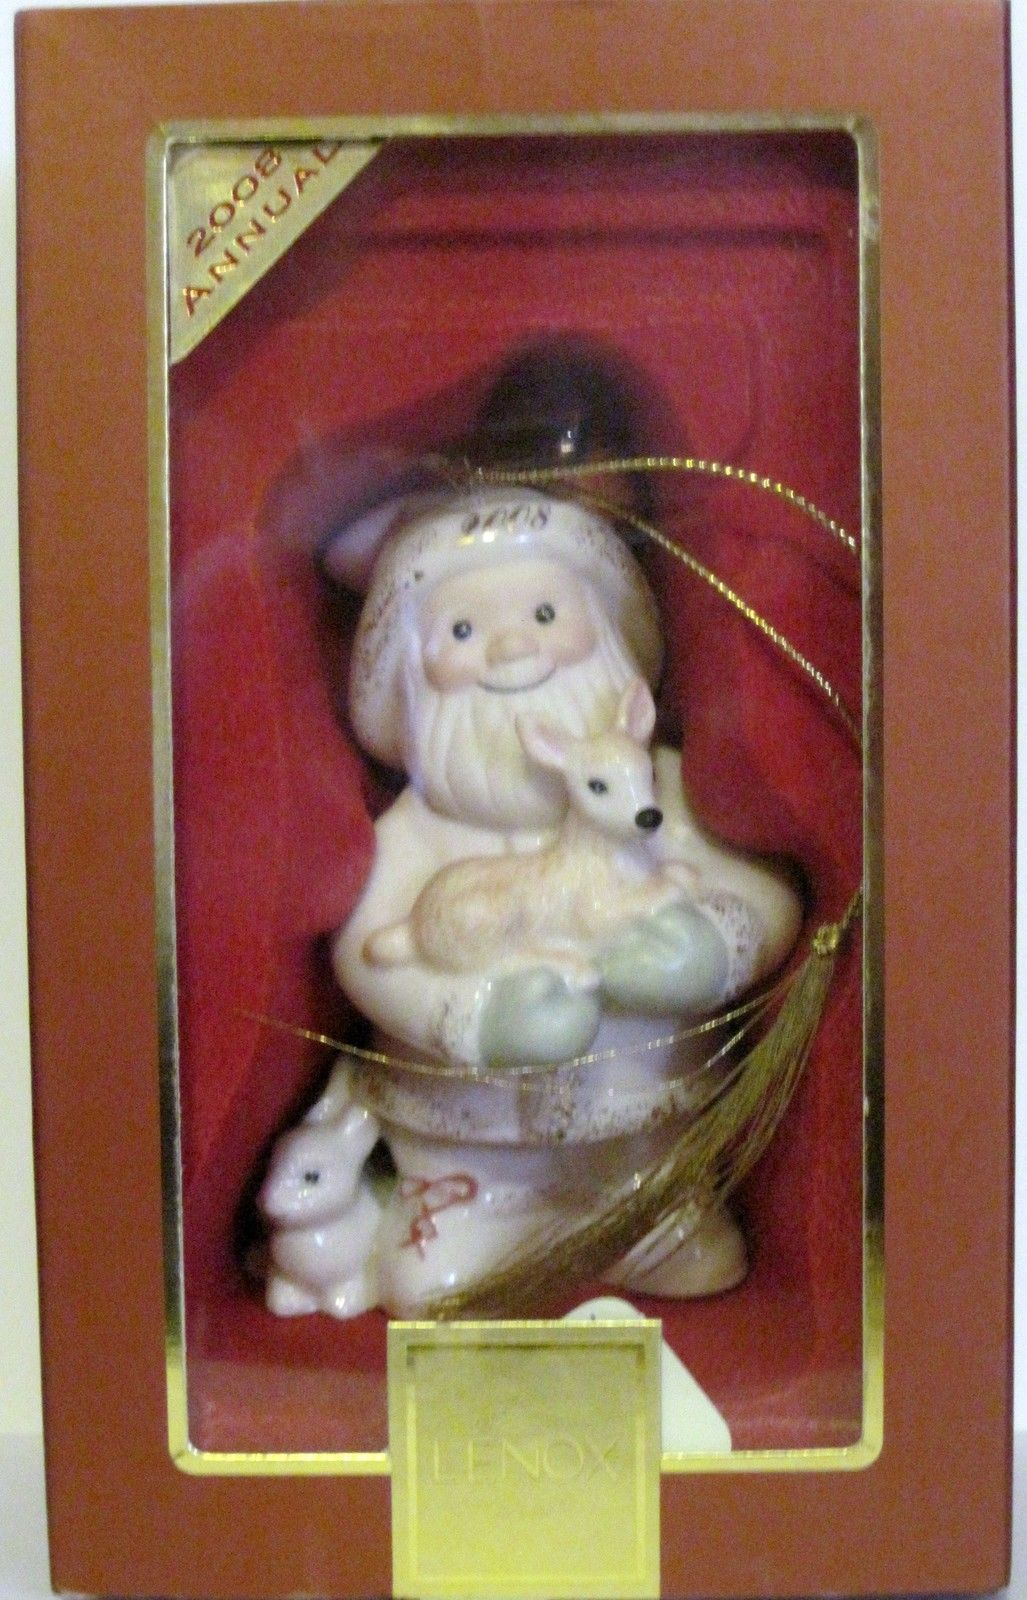 NIB Lenox 2008 Annual Santa's Woodland Friends Christmas Ornament porcelain